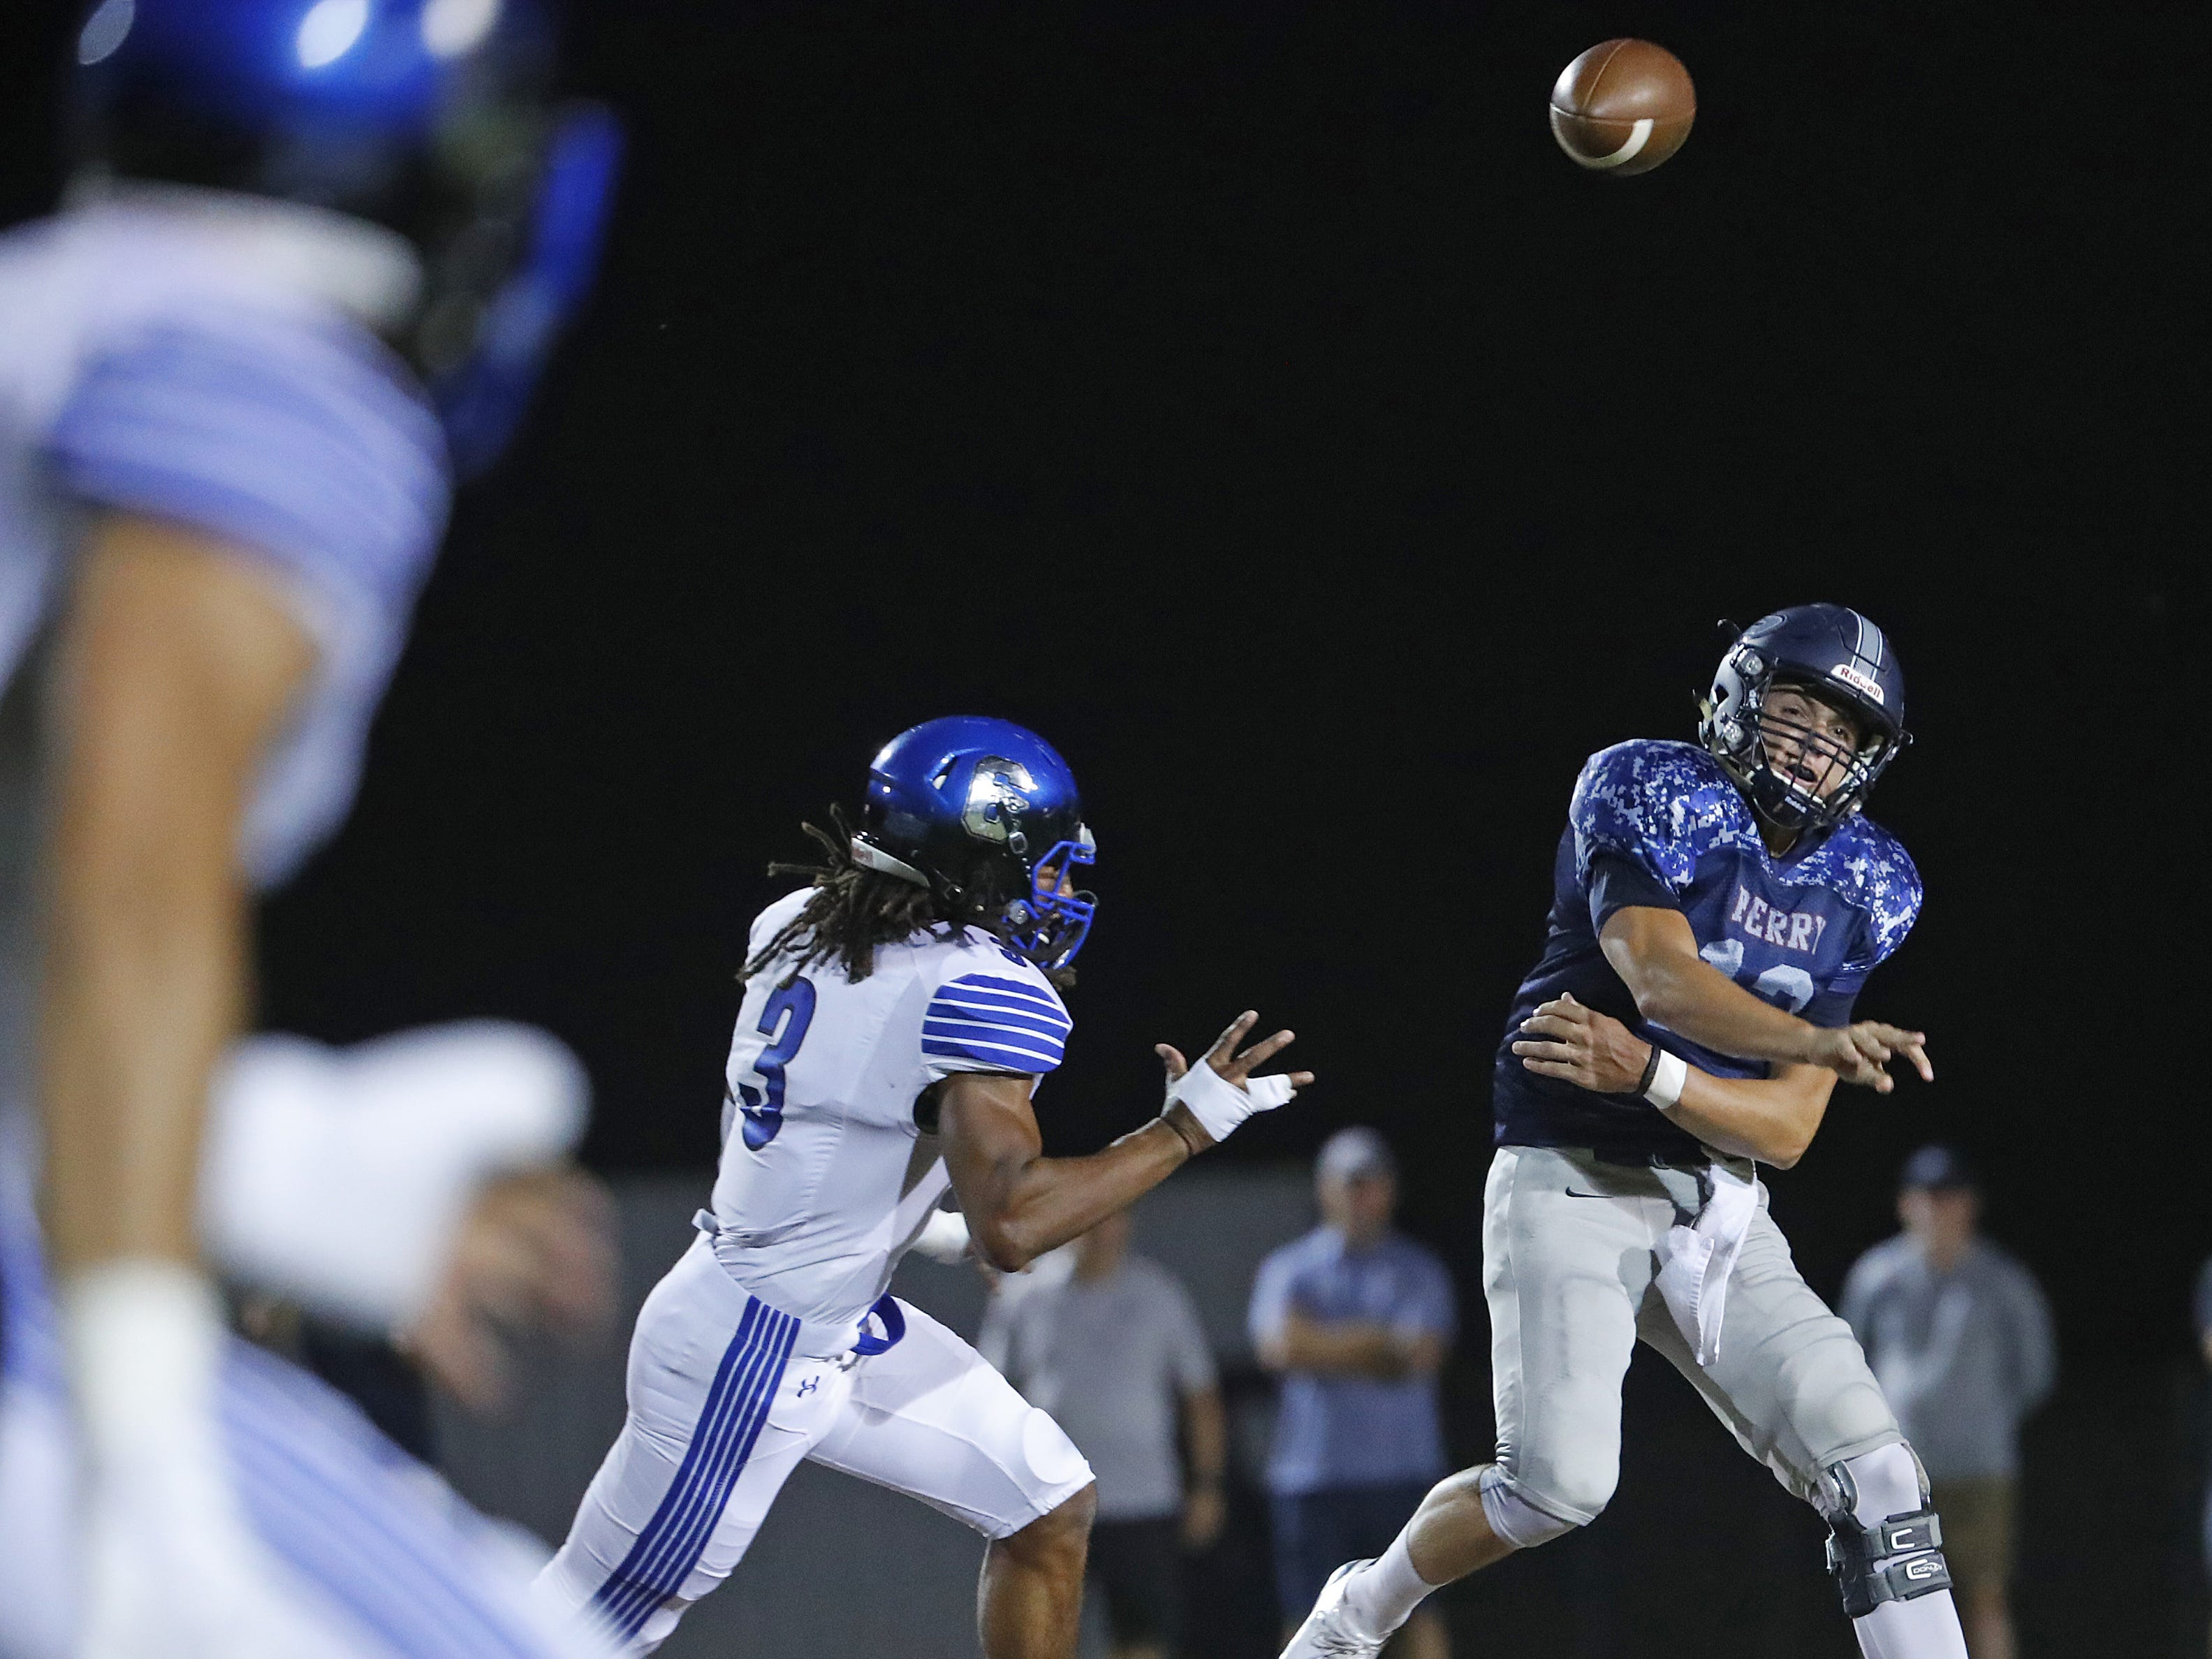 Perry's Chubba Purdy (12) throws a pass under pressure from Chandler's Malik Reed (3) at Perry High School in Gilbert, Ariz. on Sept. 28, 2018.  #azhsfb